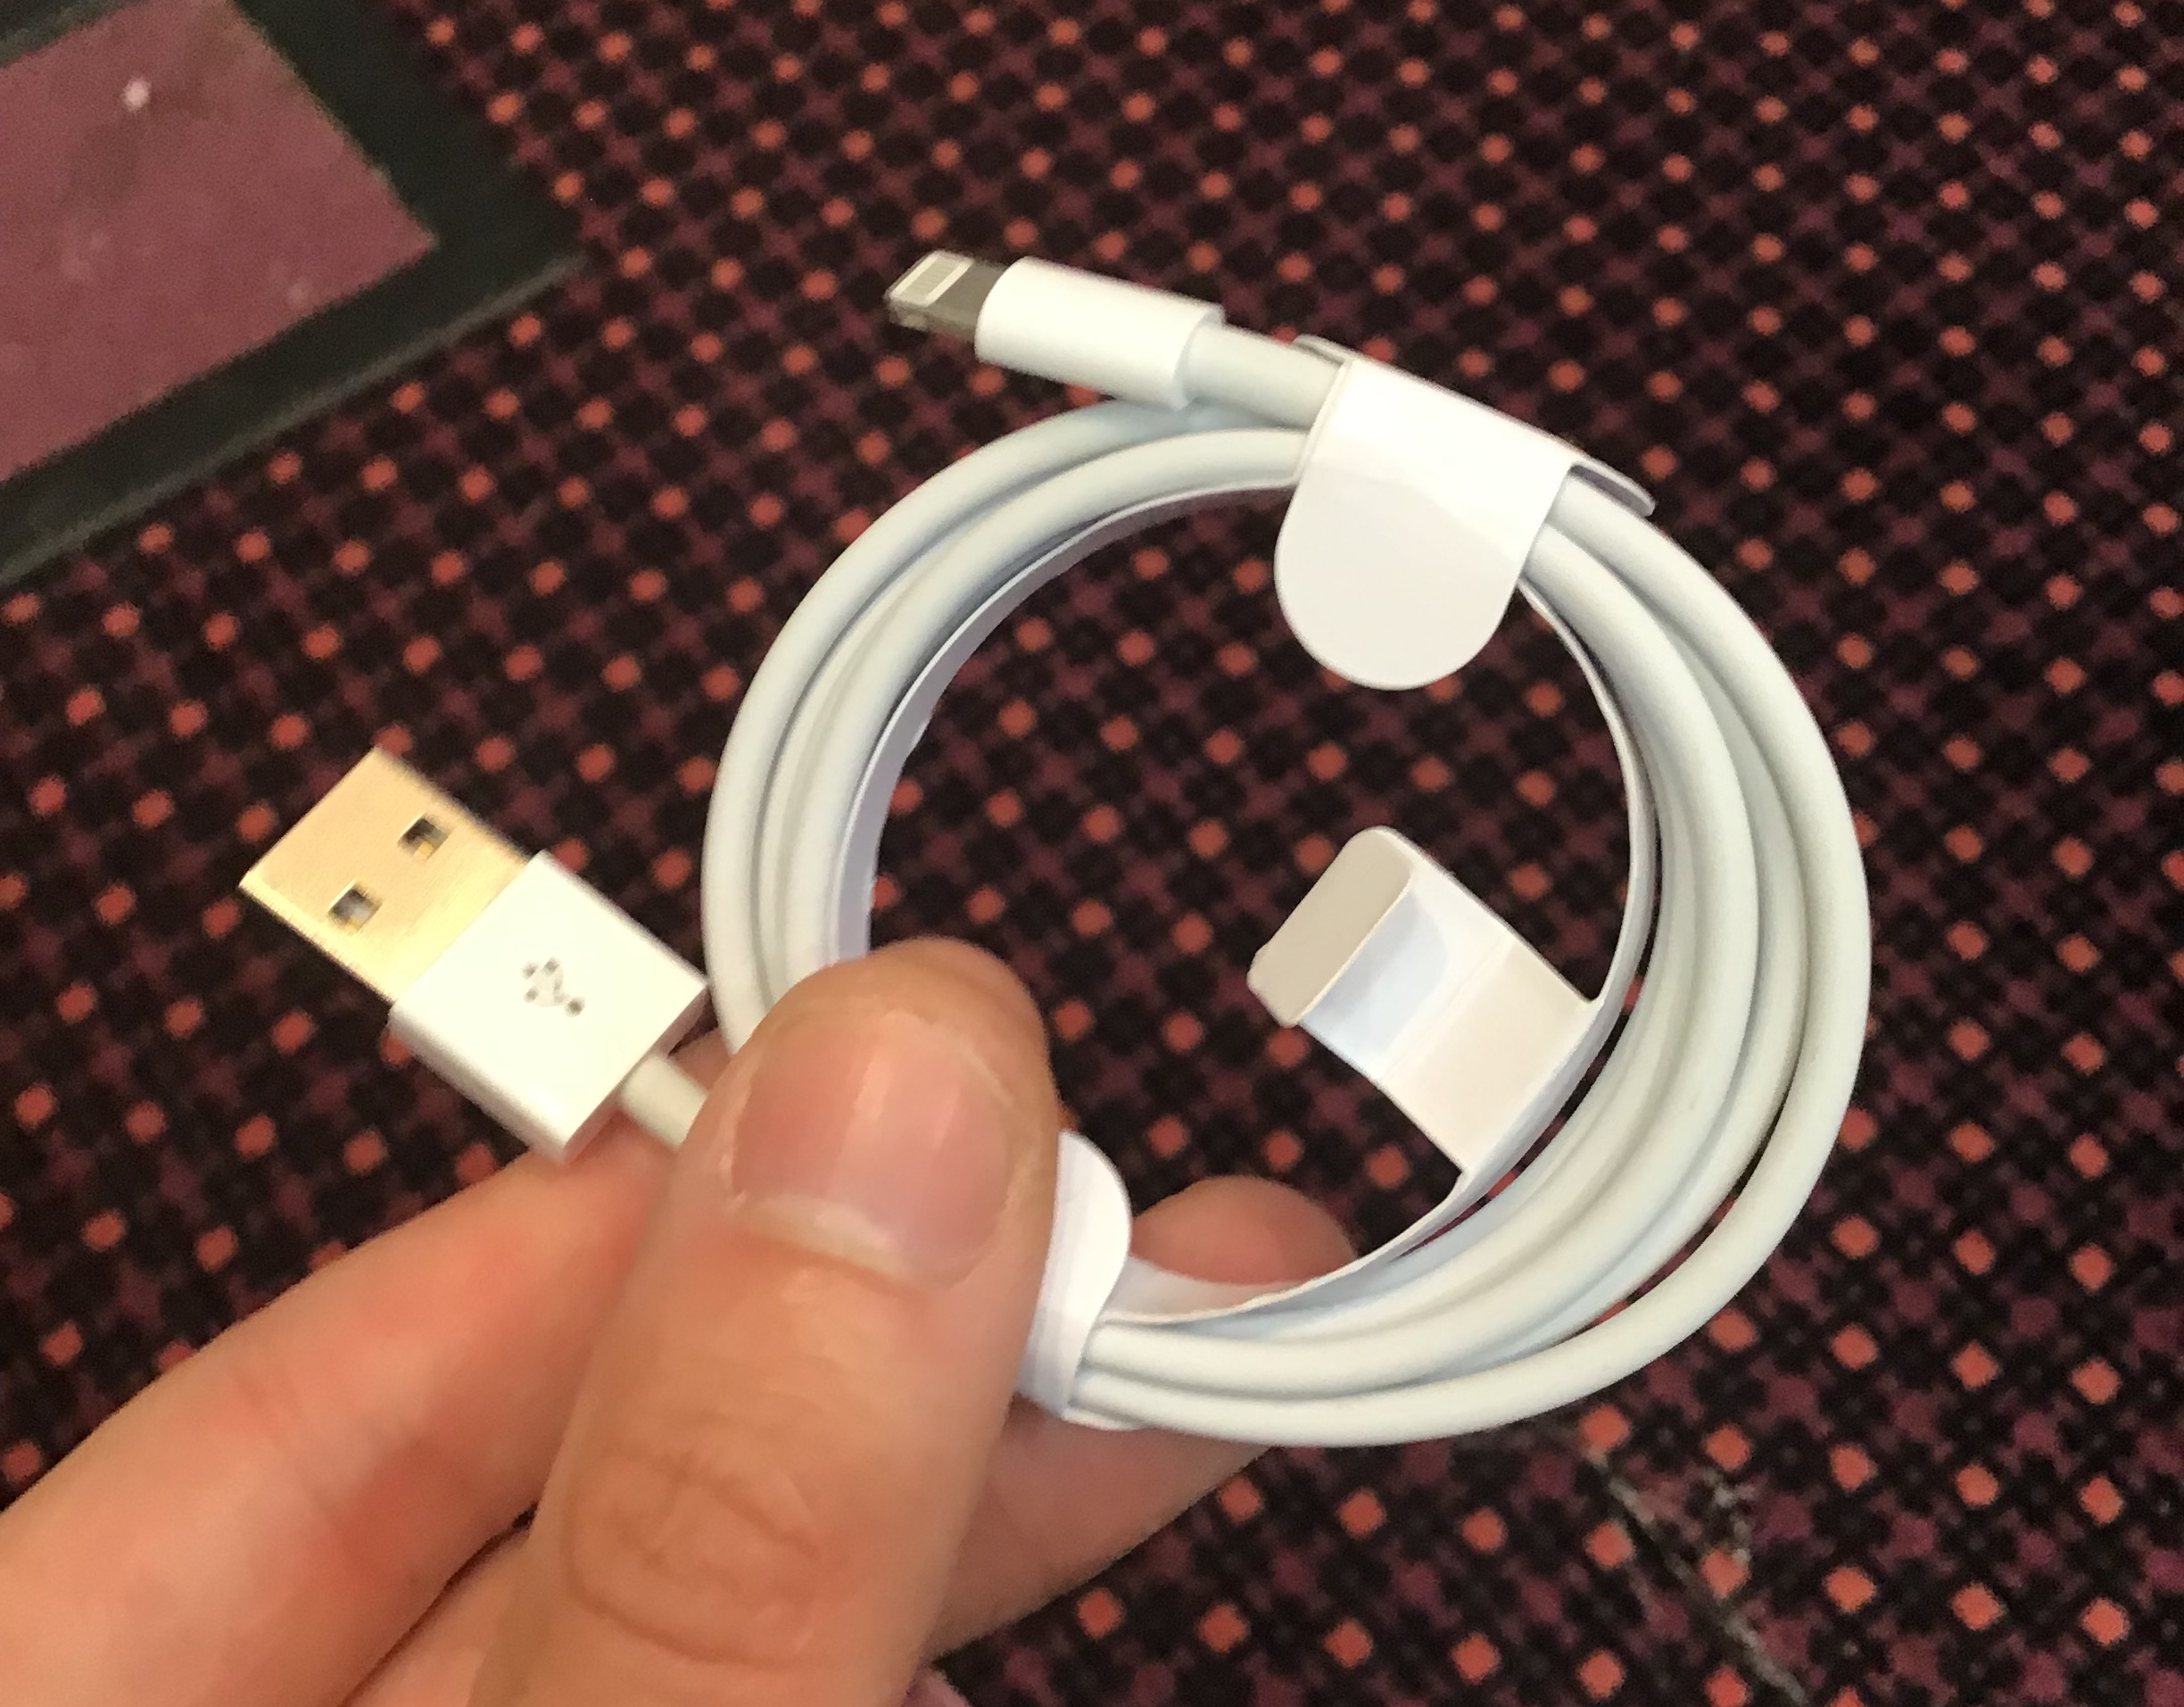 These Legit-Looking iPhone Lightning Cables Will Hijack Your Computer